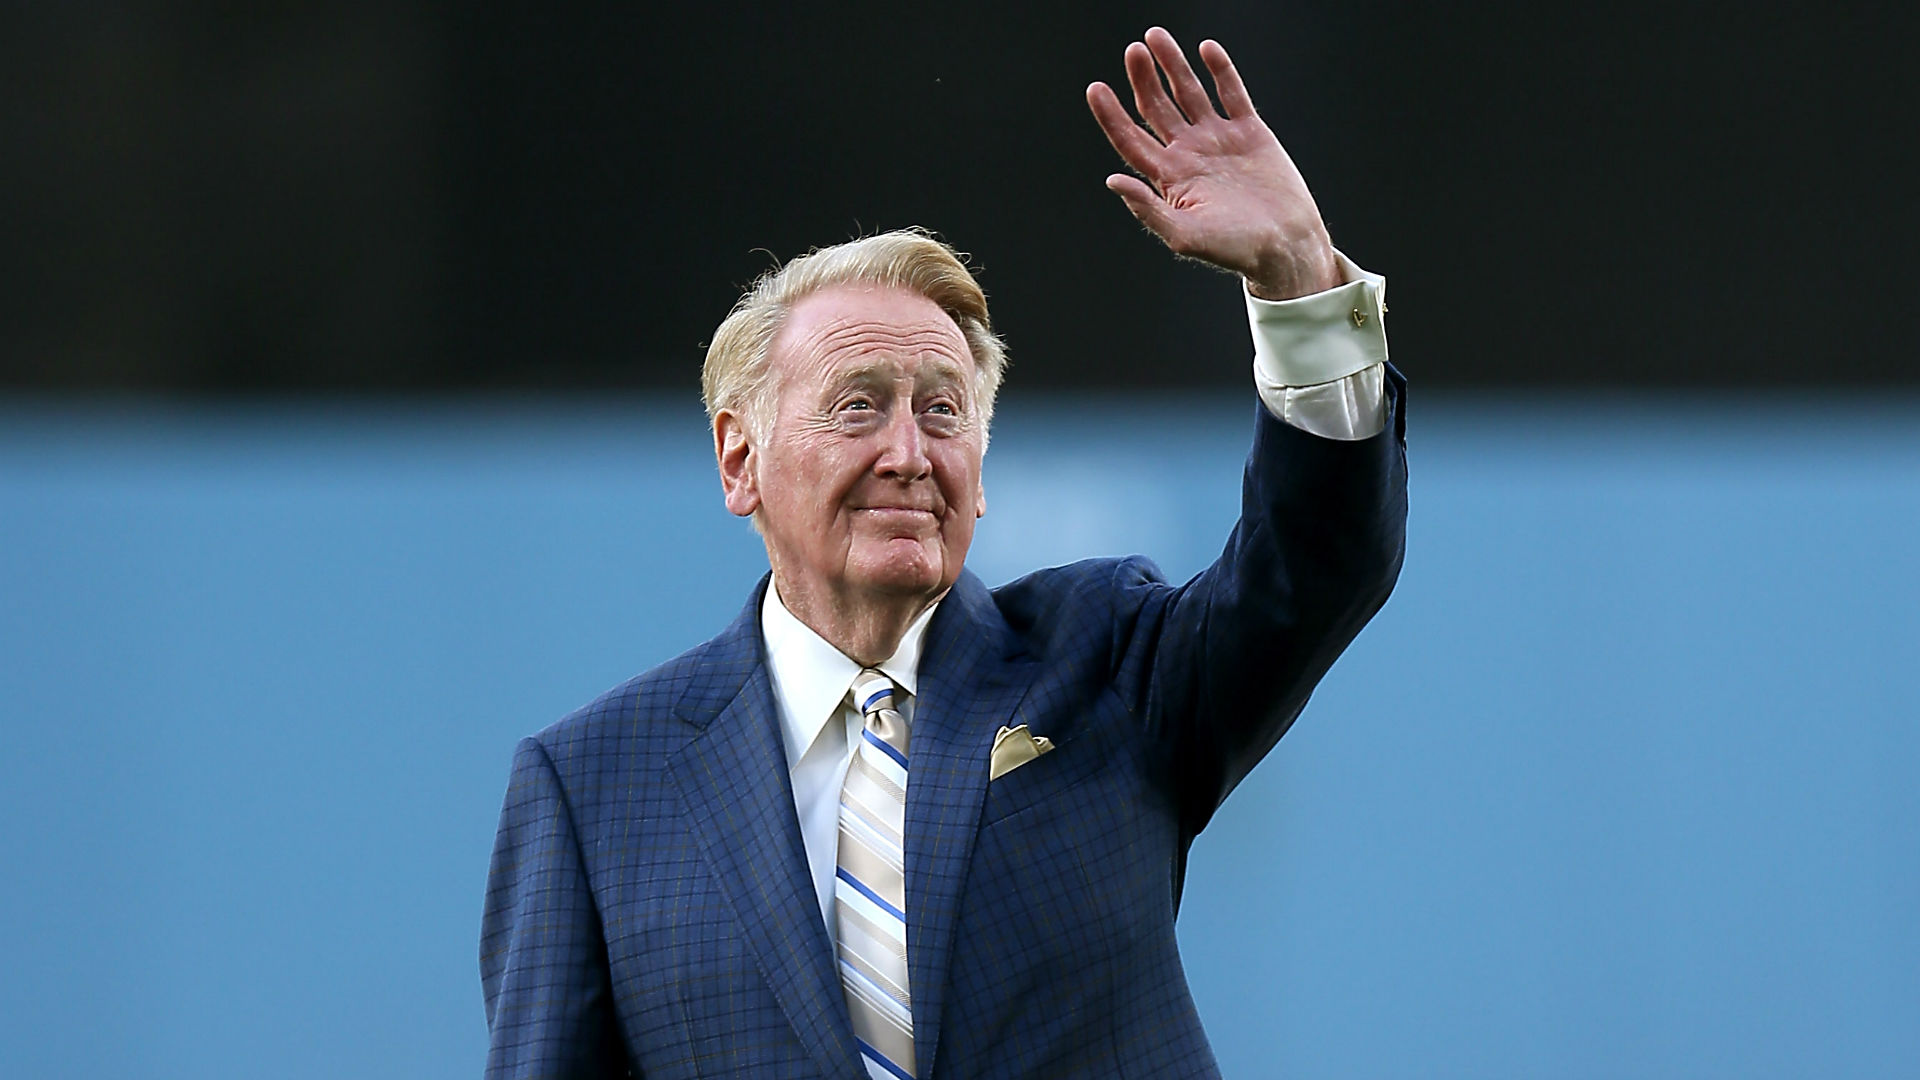 Vin Scully: I will never watch another NFL game